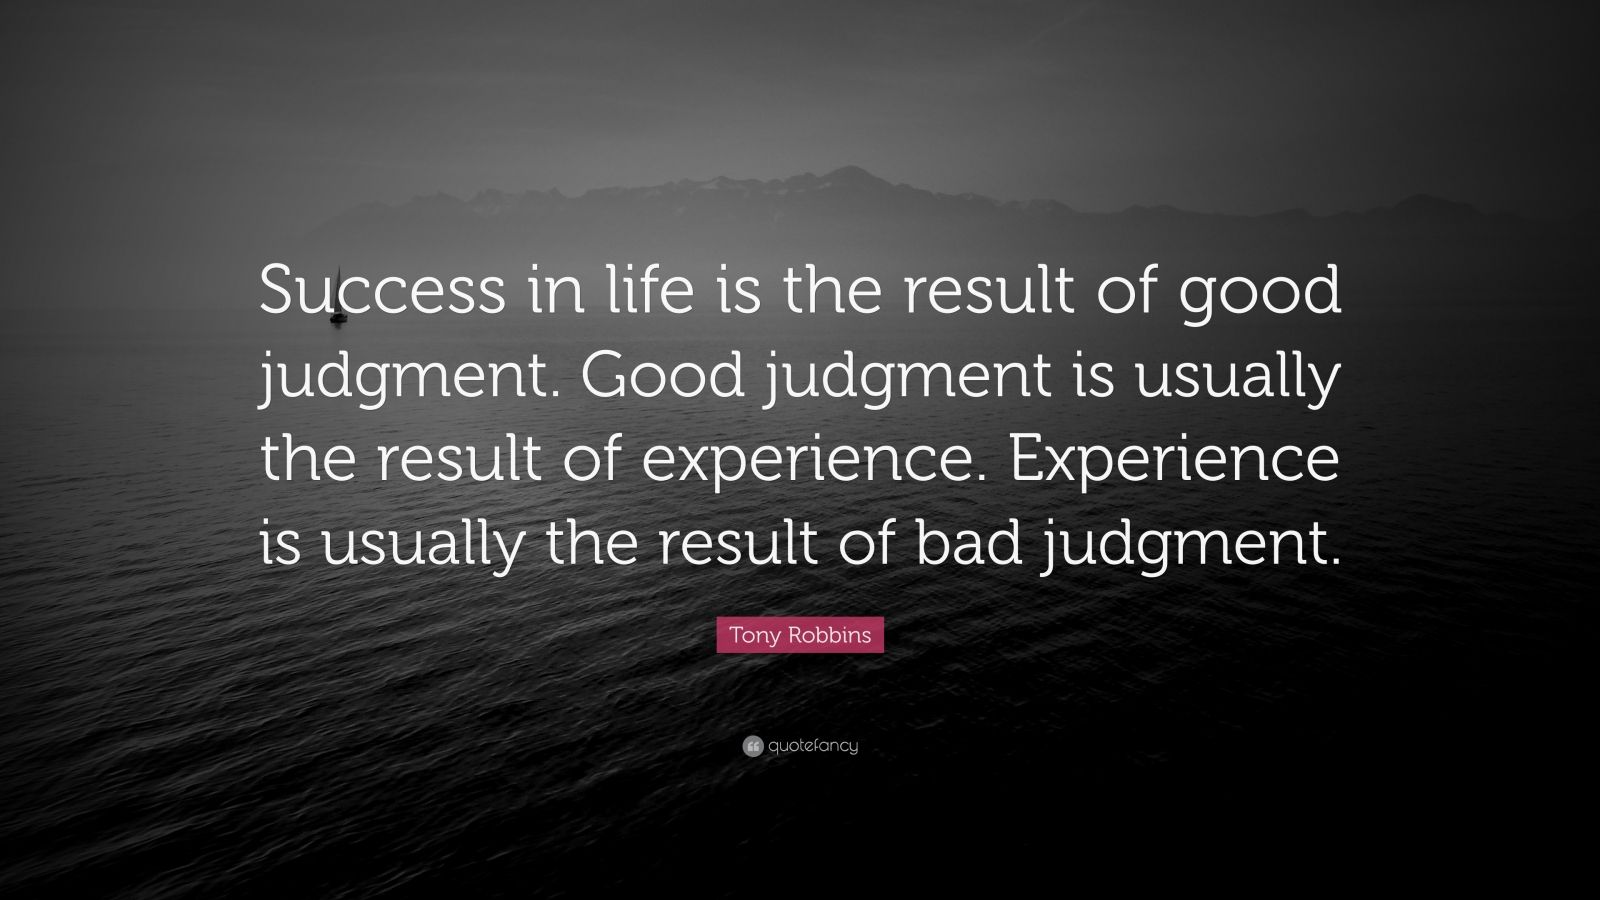 """Tony Robbins Quote: """"Success in life is the result of good judgment. Good judgment is usually the result of experience. Experience is usually the result of bad judgment."""""""